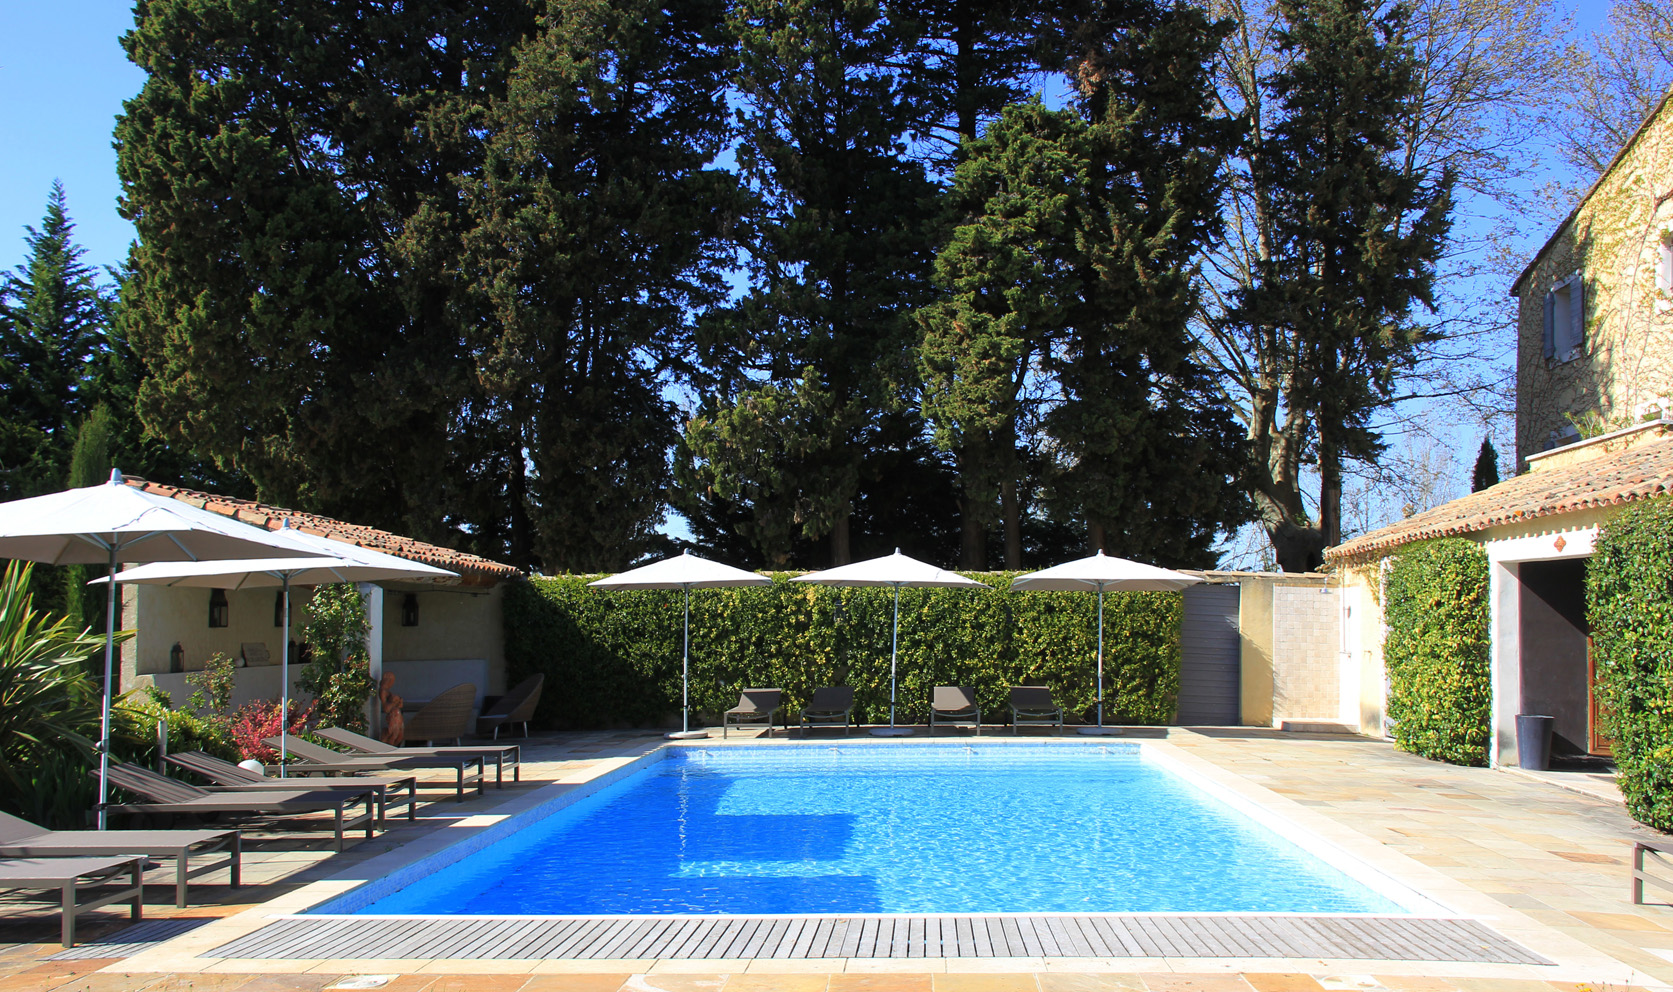 Luxury villa, private pool, sleeps 12, air conditioning, near village, tennis and golf course